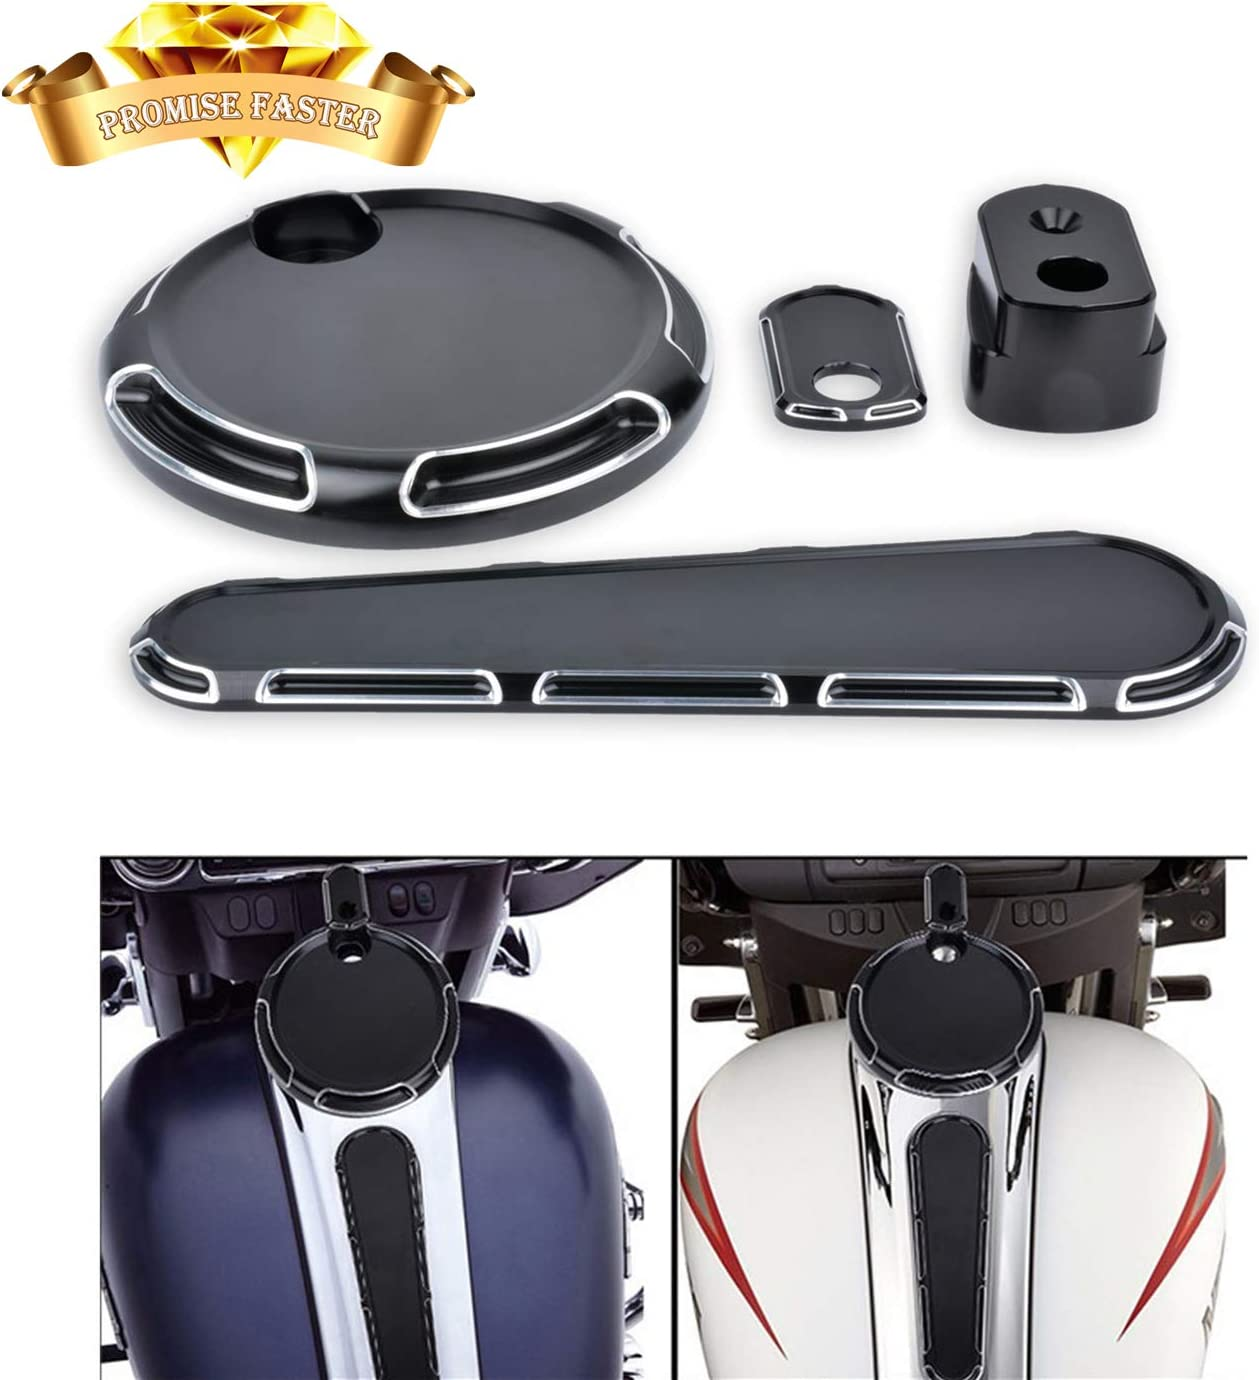 Fuel Gas Door Cover + Fule Dash Cover + Ignition switch Cover For Harley-Davidson Electra Glide Road Glide Street Glide Touring Models 2014-2020 (Black)